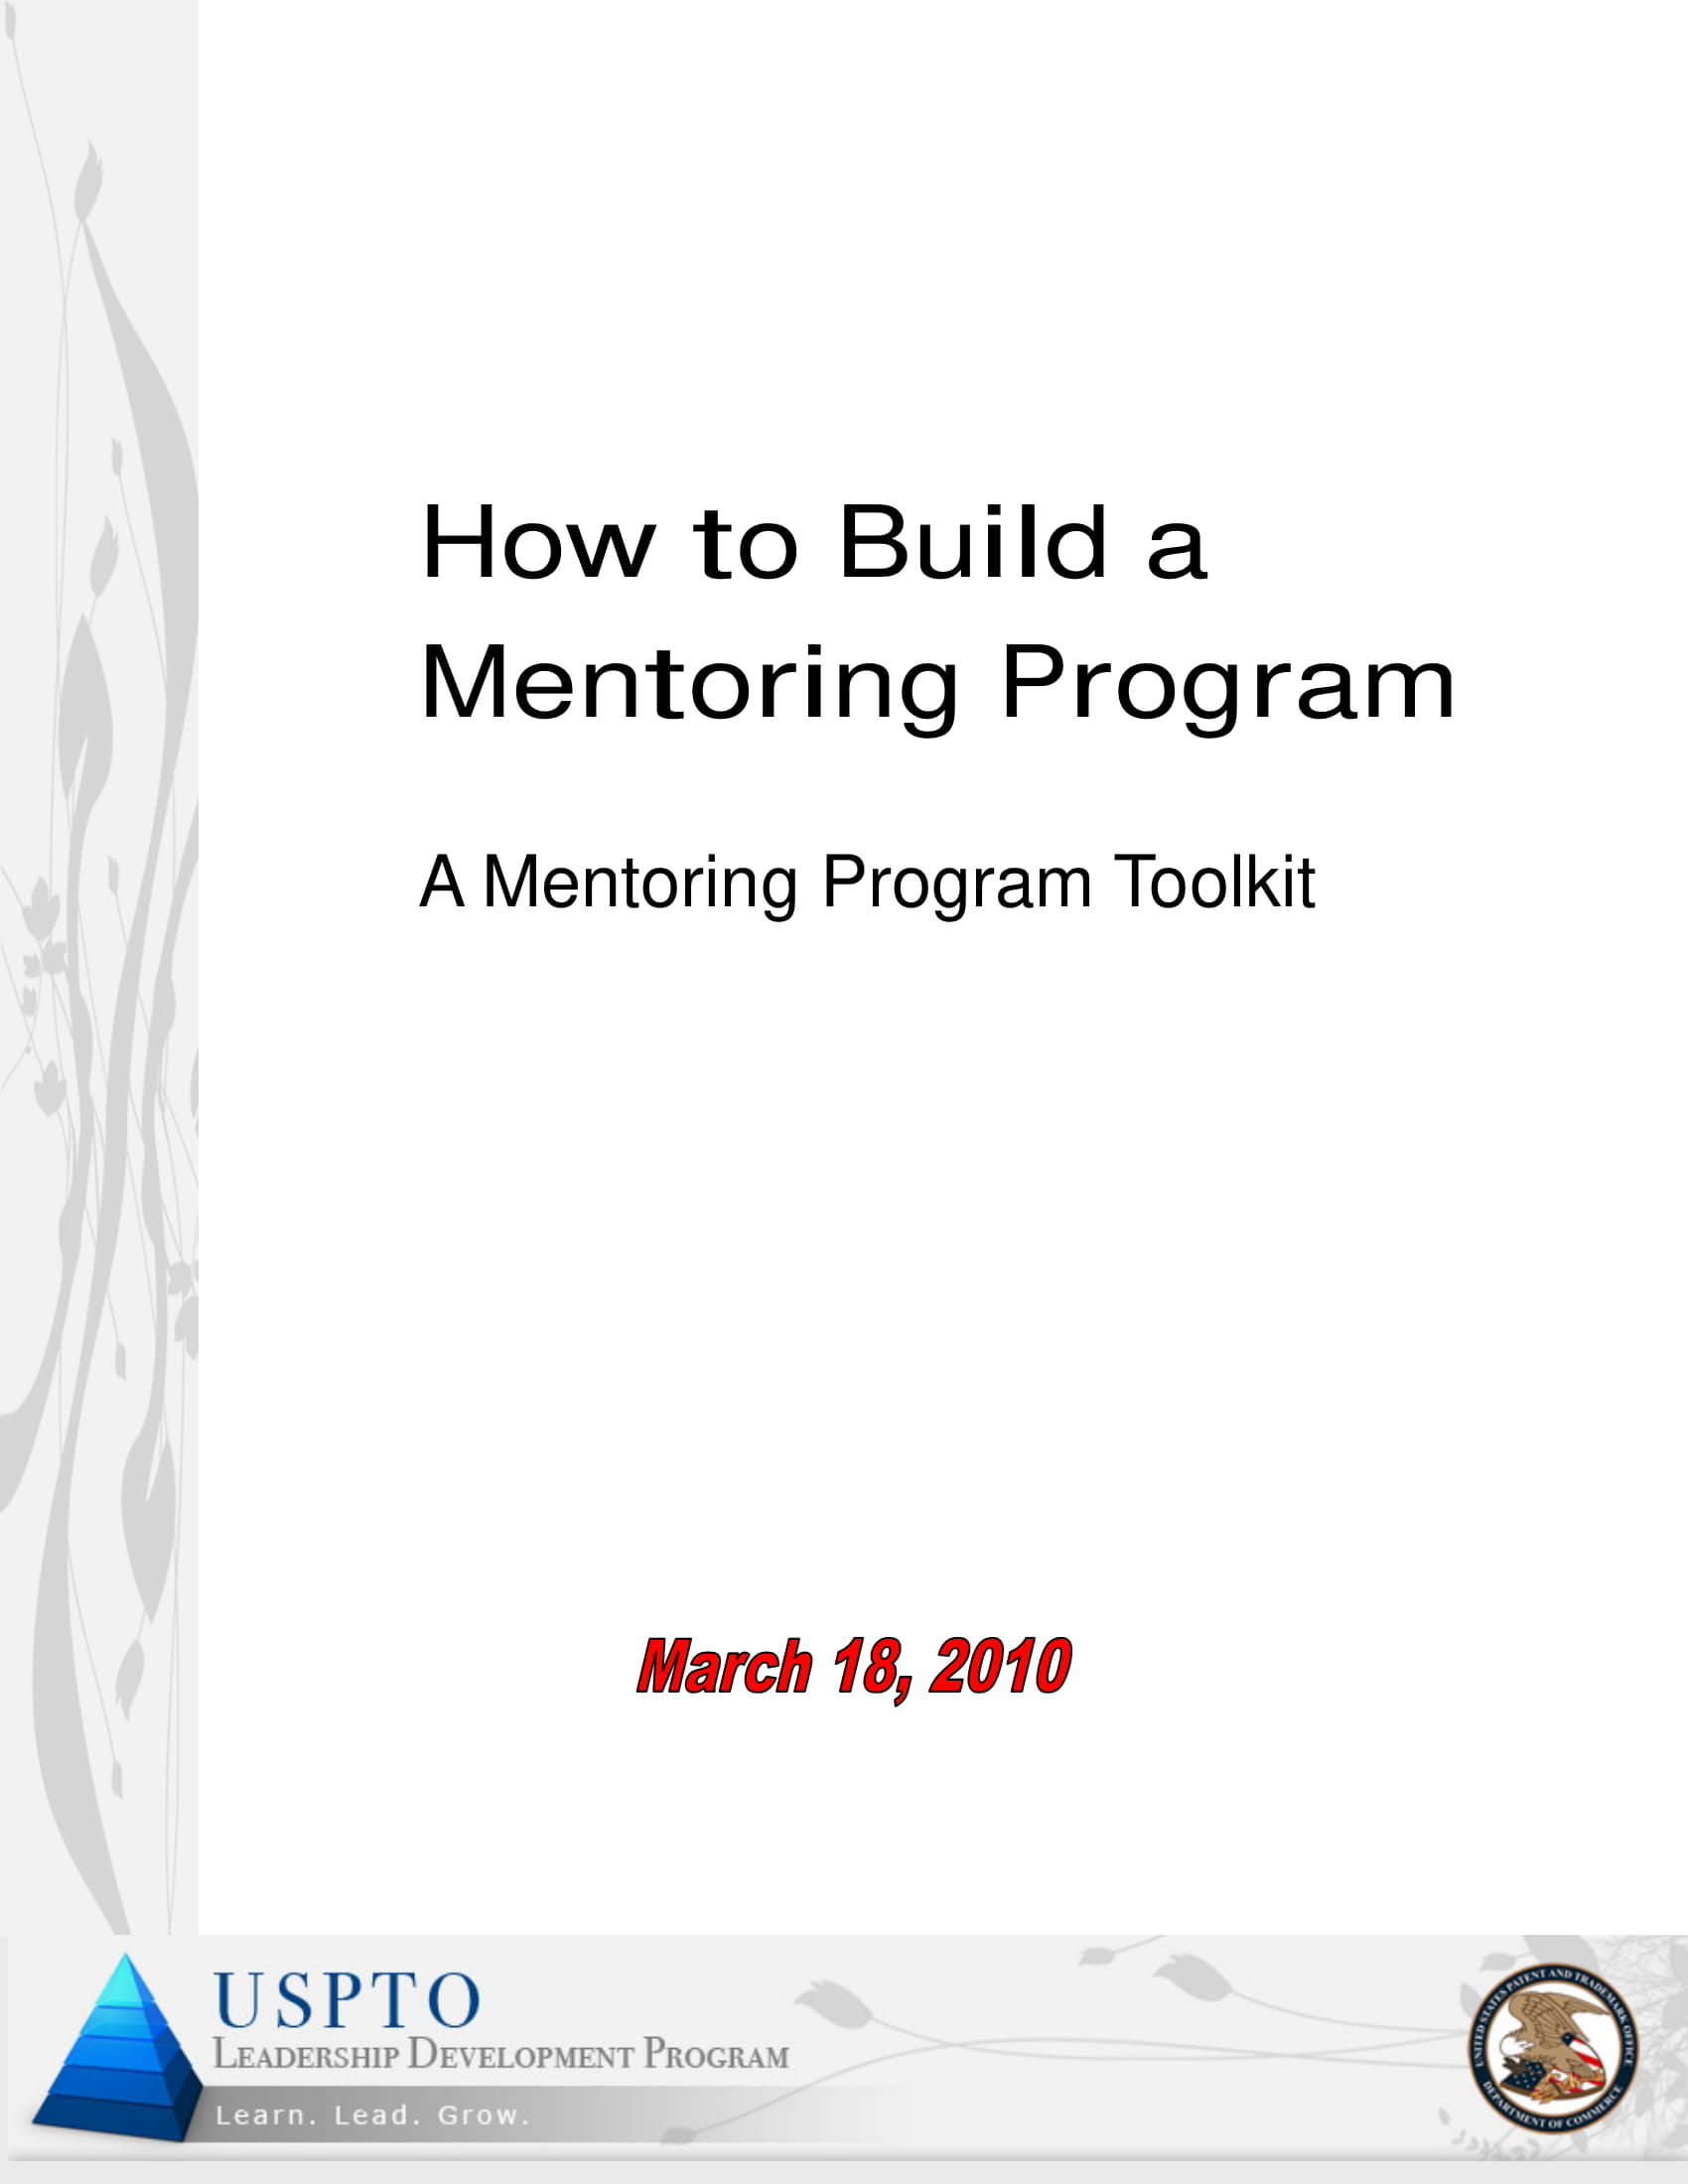 mentoring program action plan and toolkit example 011